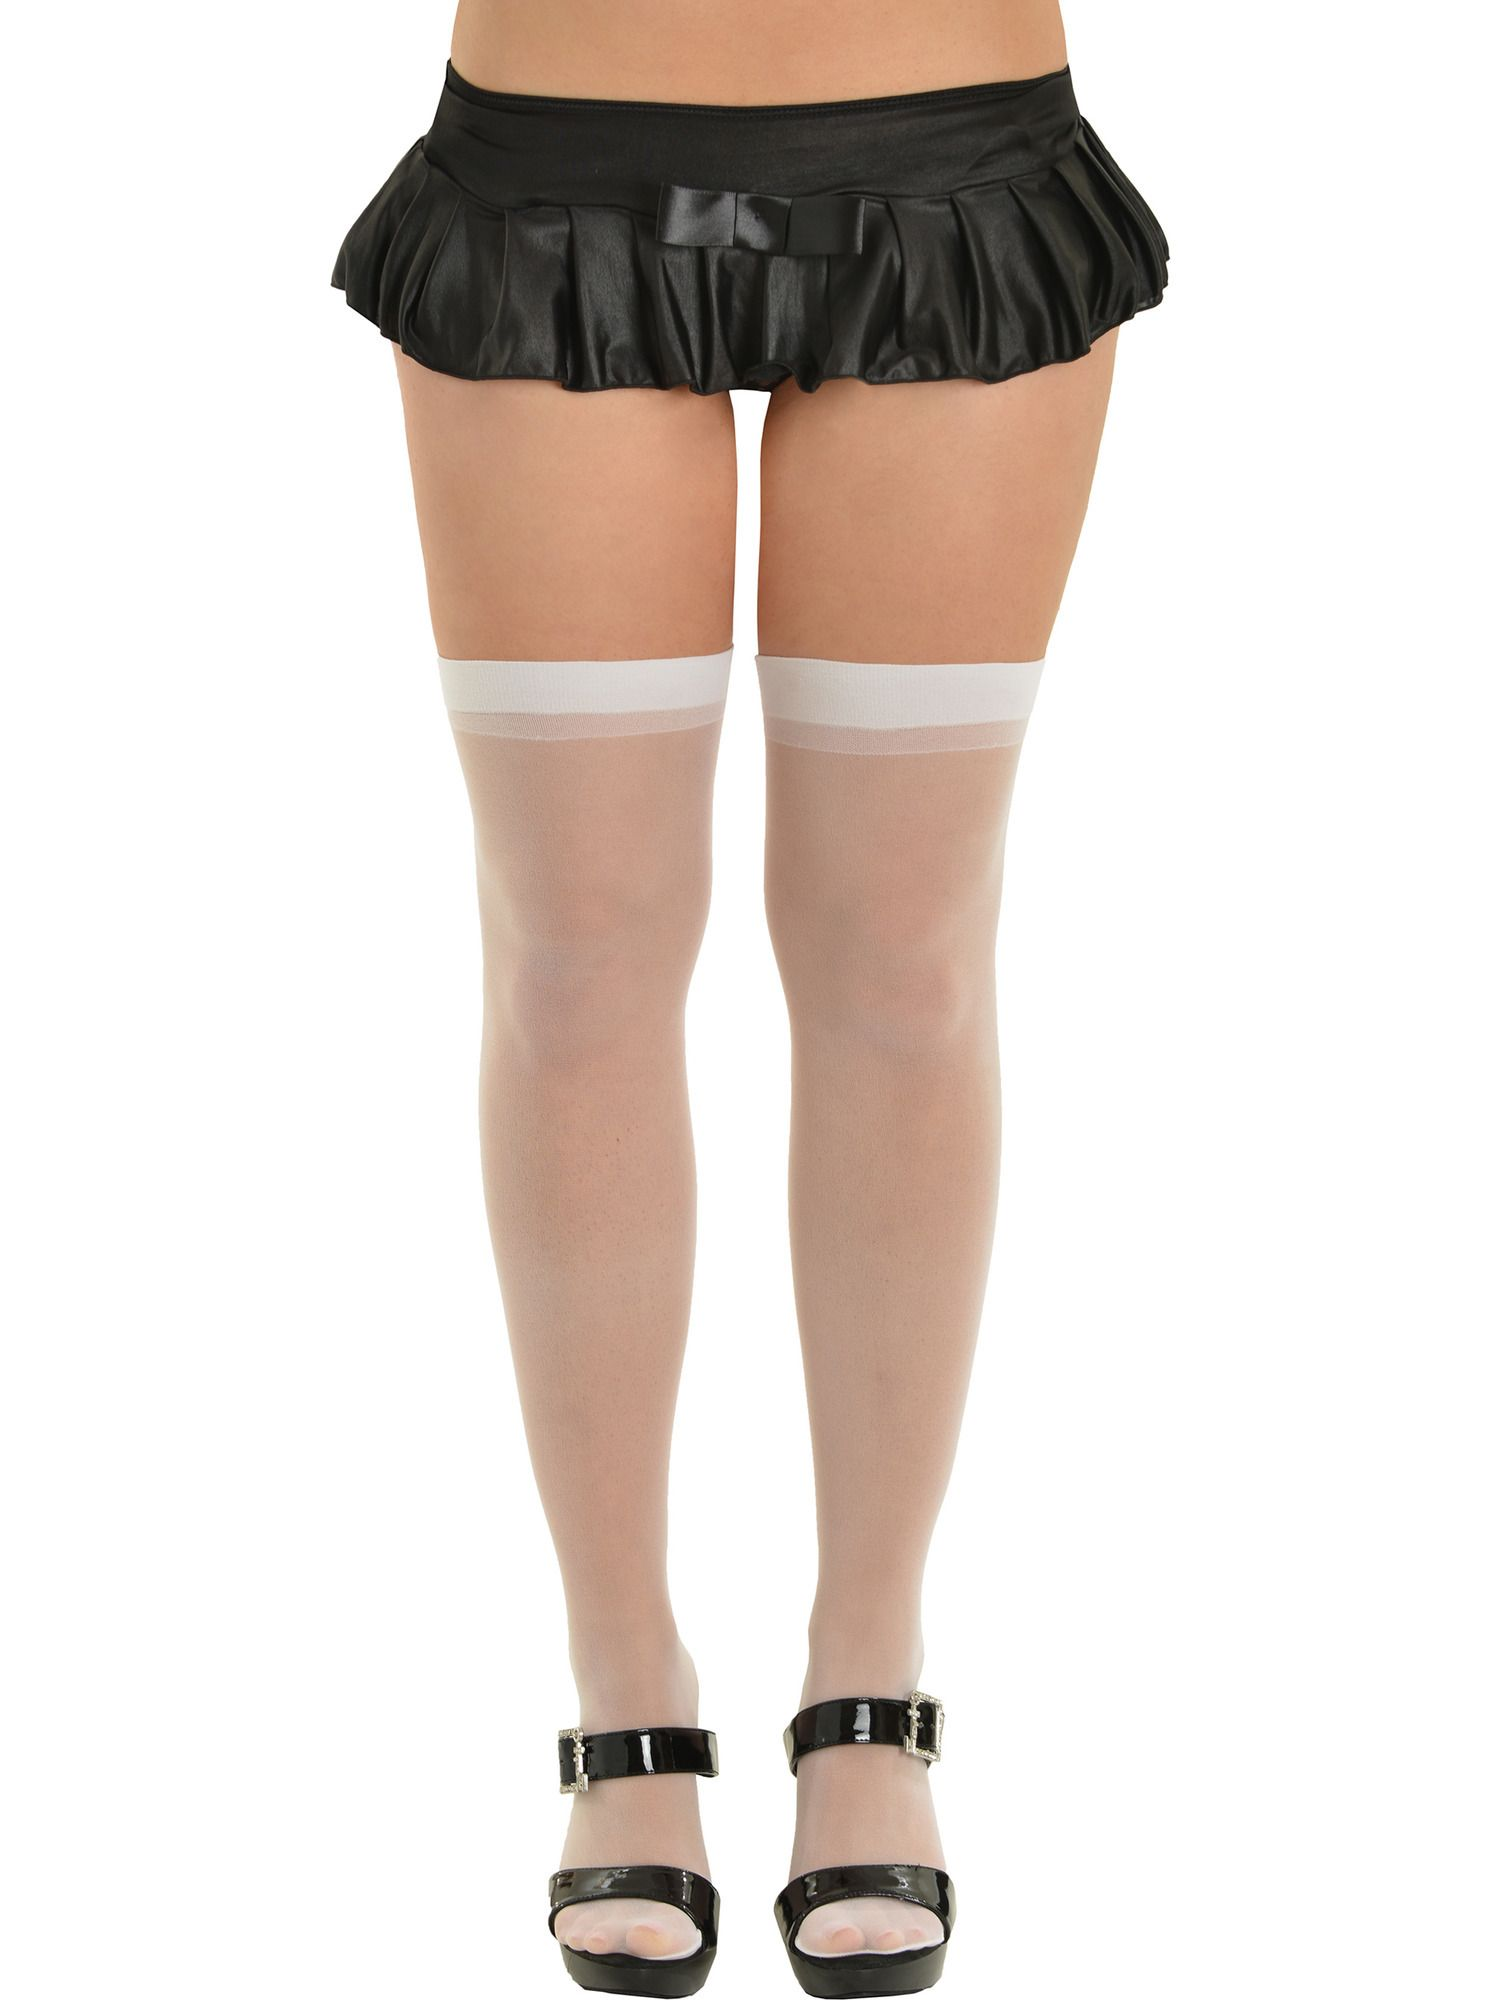 f547e2b4f Womens Plus Size Thigh Highs Sheer Stockings White Nude or Black  Nylons Highs